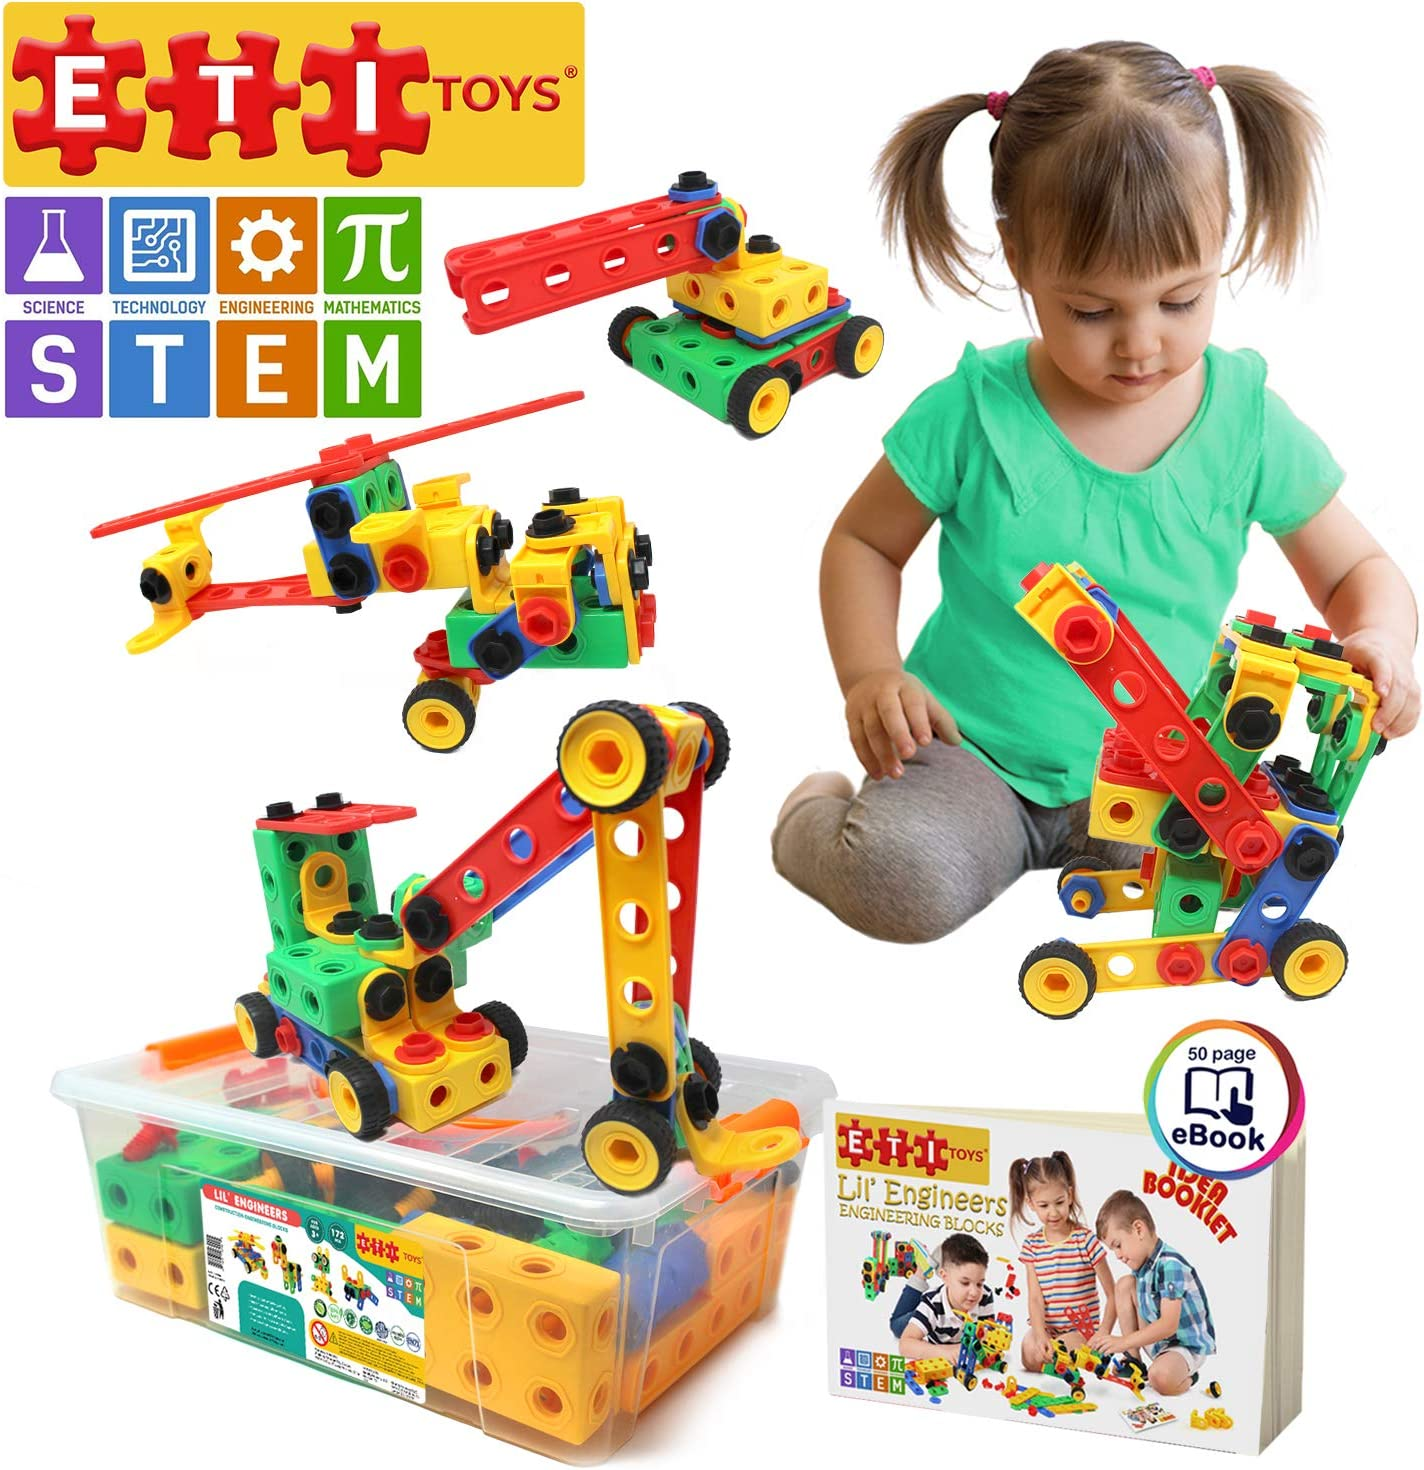 The 10 Best Learning Building Toys For 3 Year Old Boys ...